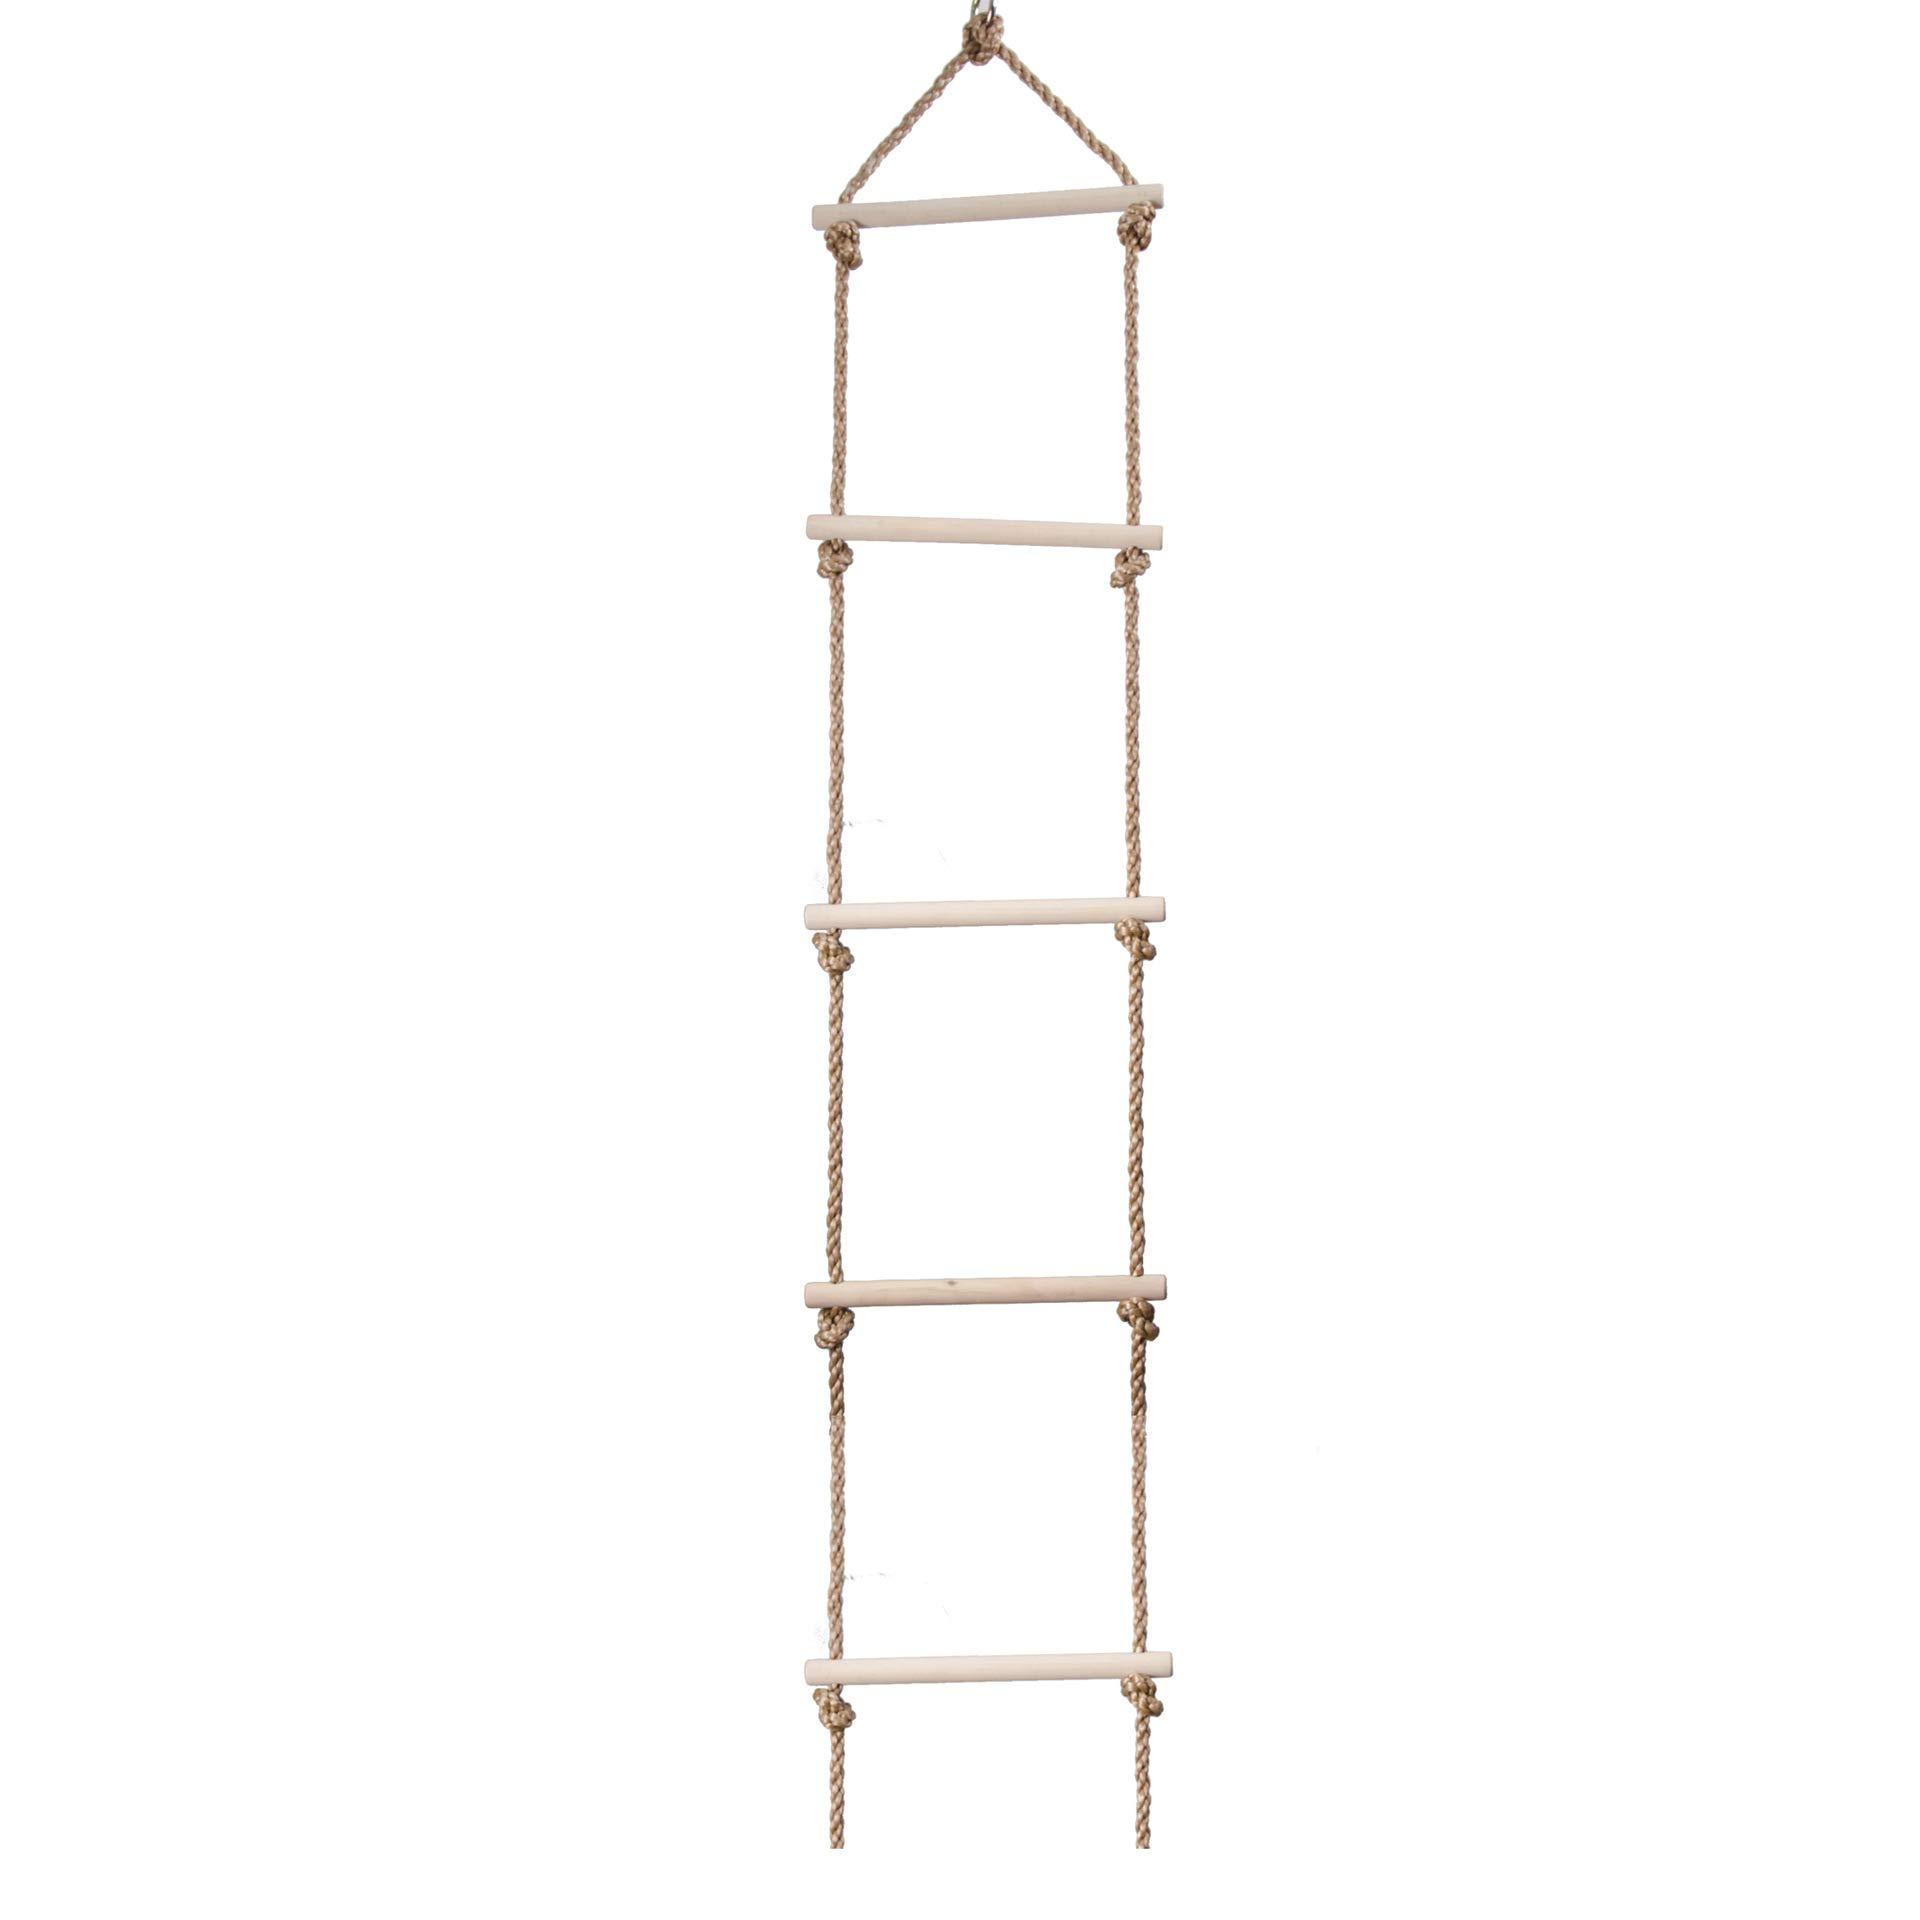 AWZSDF Sturdy Rope Climbing Ladder -Playground Climbing Five-Speed Ladder Wooden Children Climbing Ladder Swing Outdoor Sports for Kids Indoor/Outdoo by AWZSDF